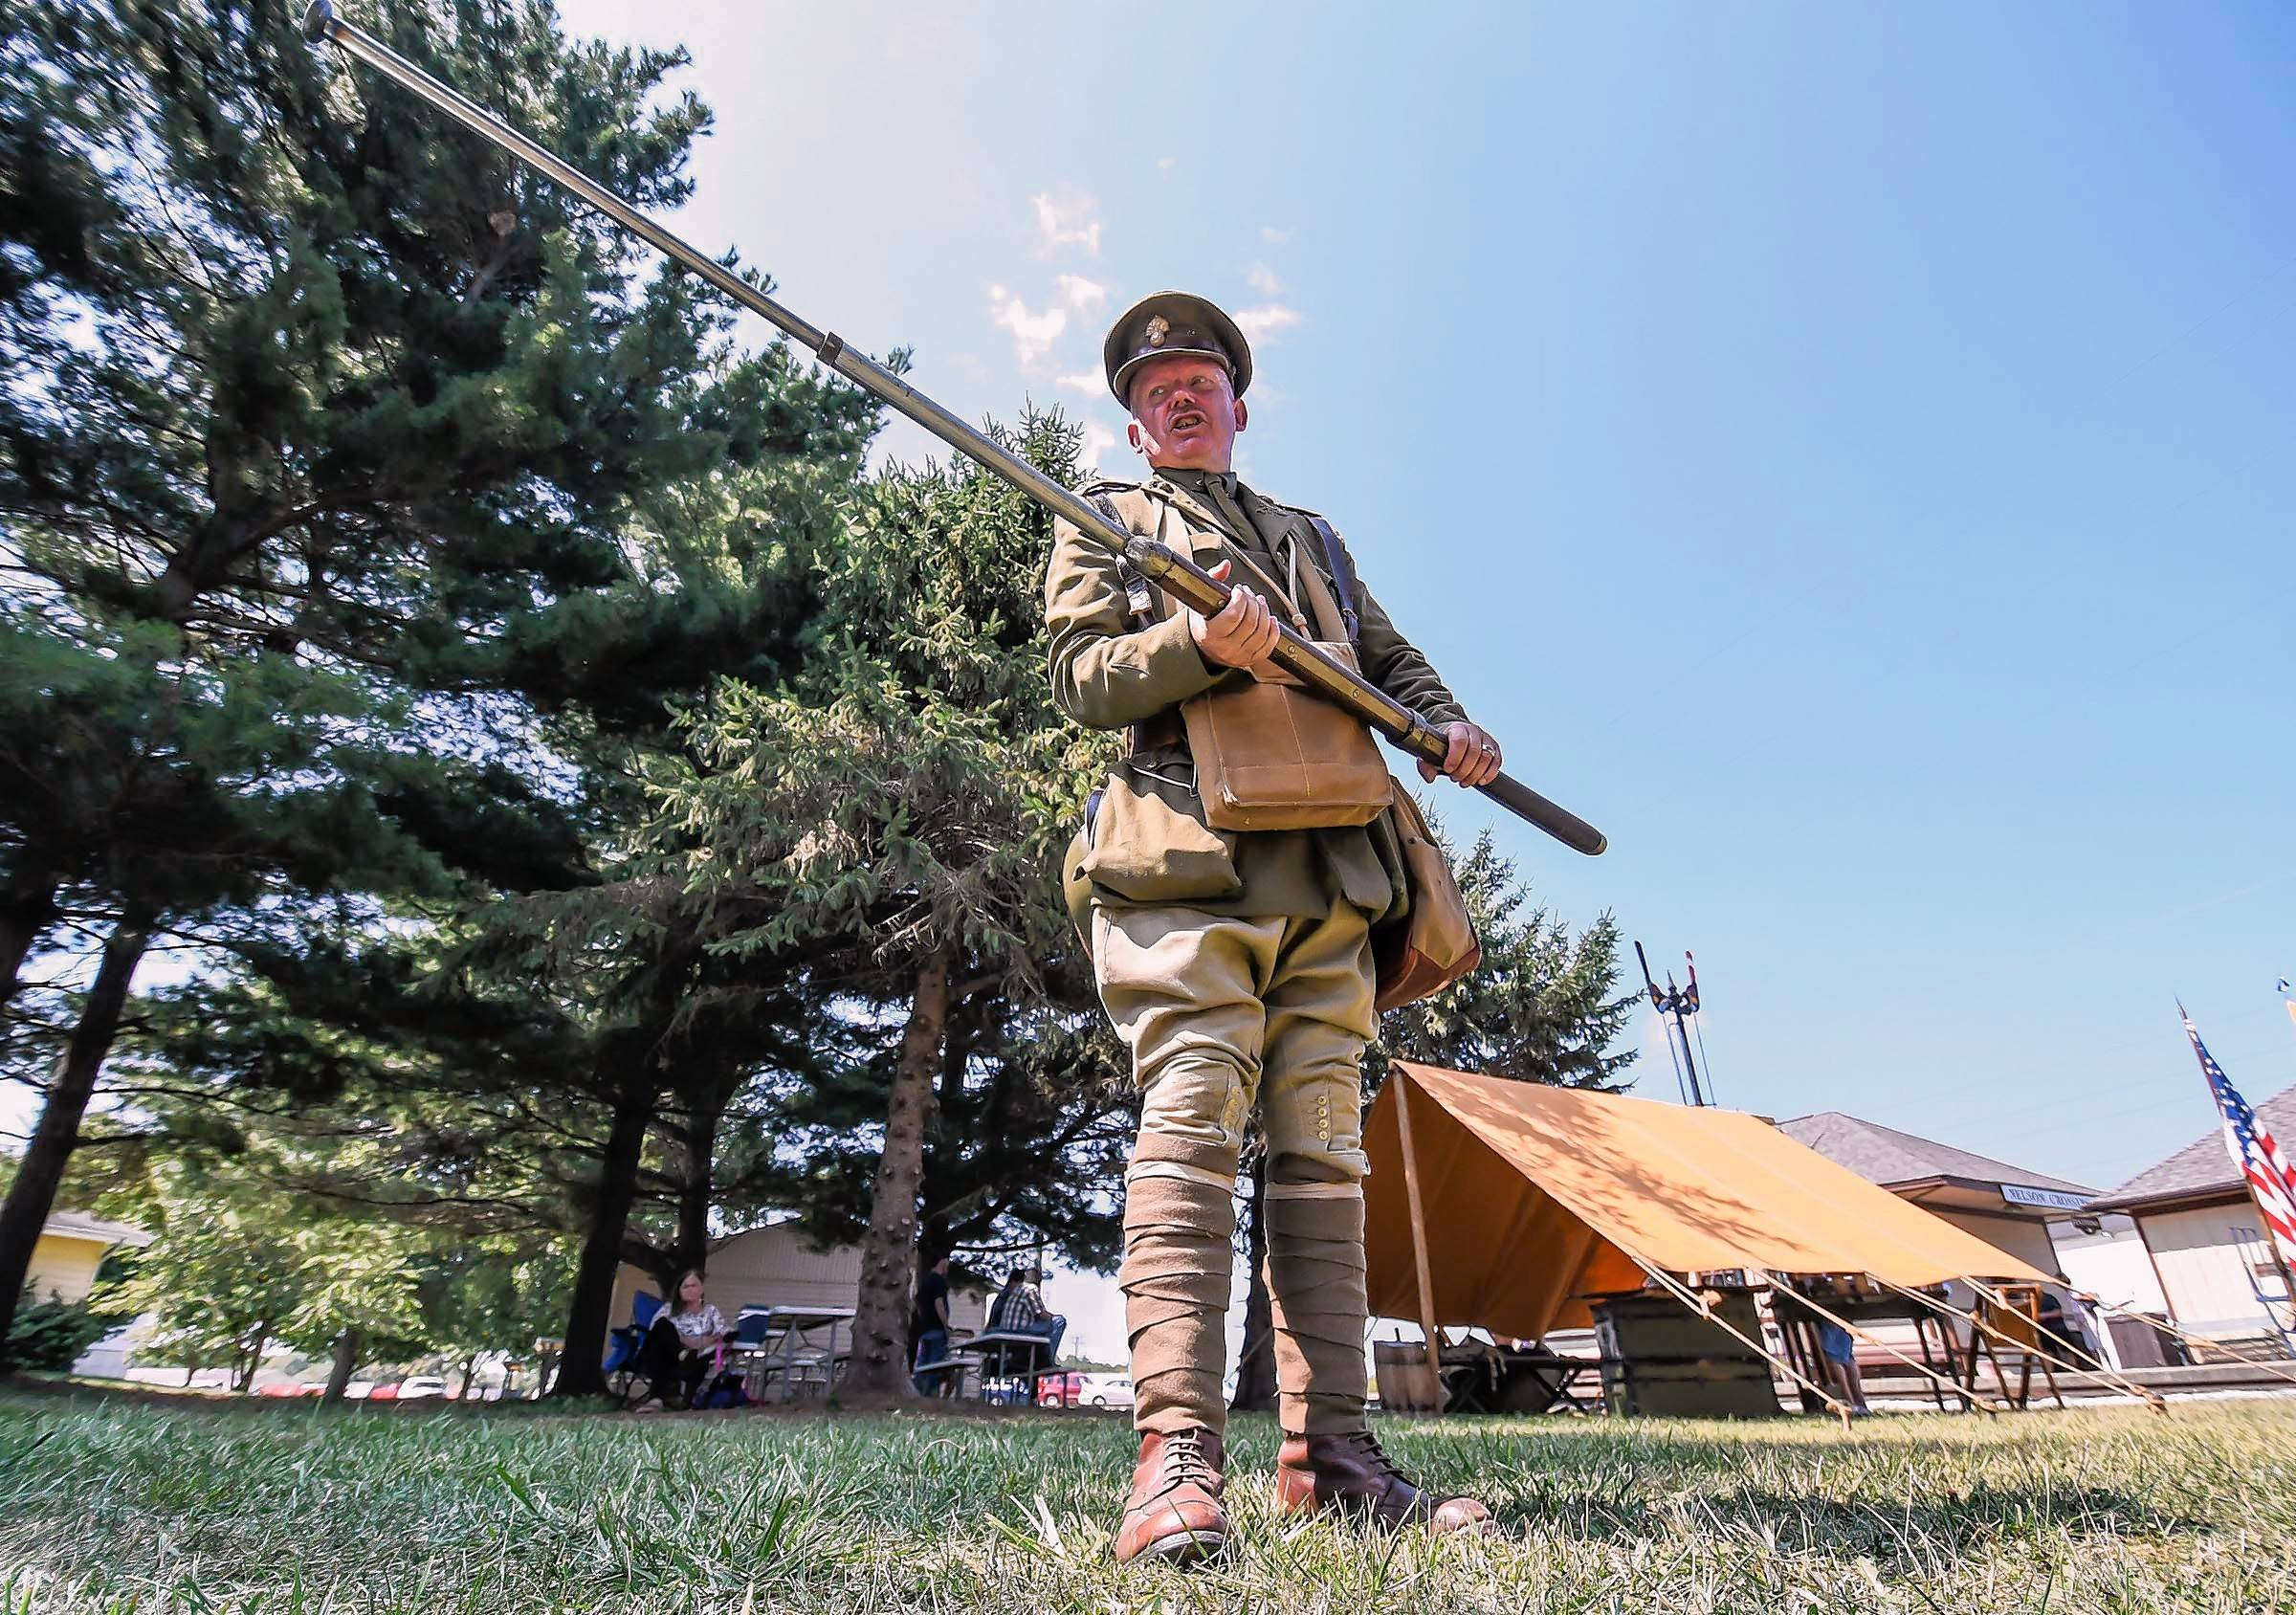 Great War Living History enthusiast Ian Houghton participates in a World War I encampment at Monticello, Illinois.